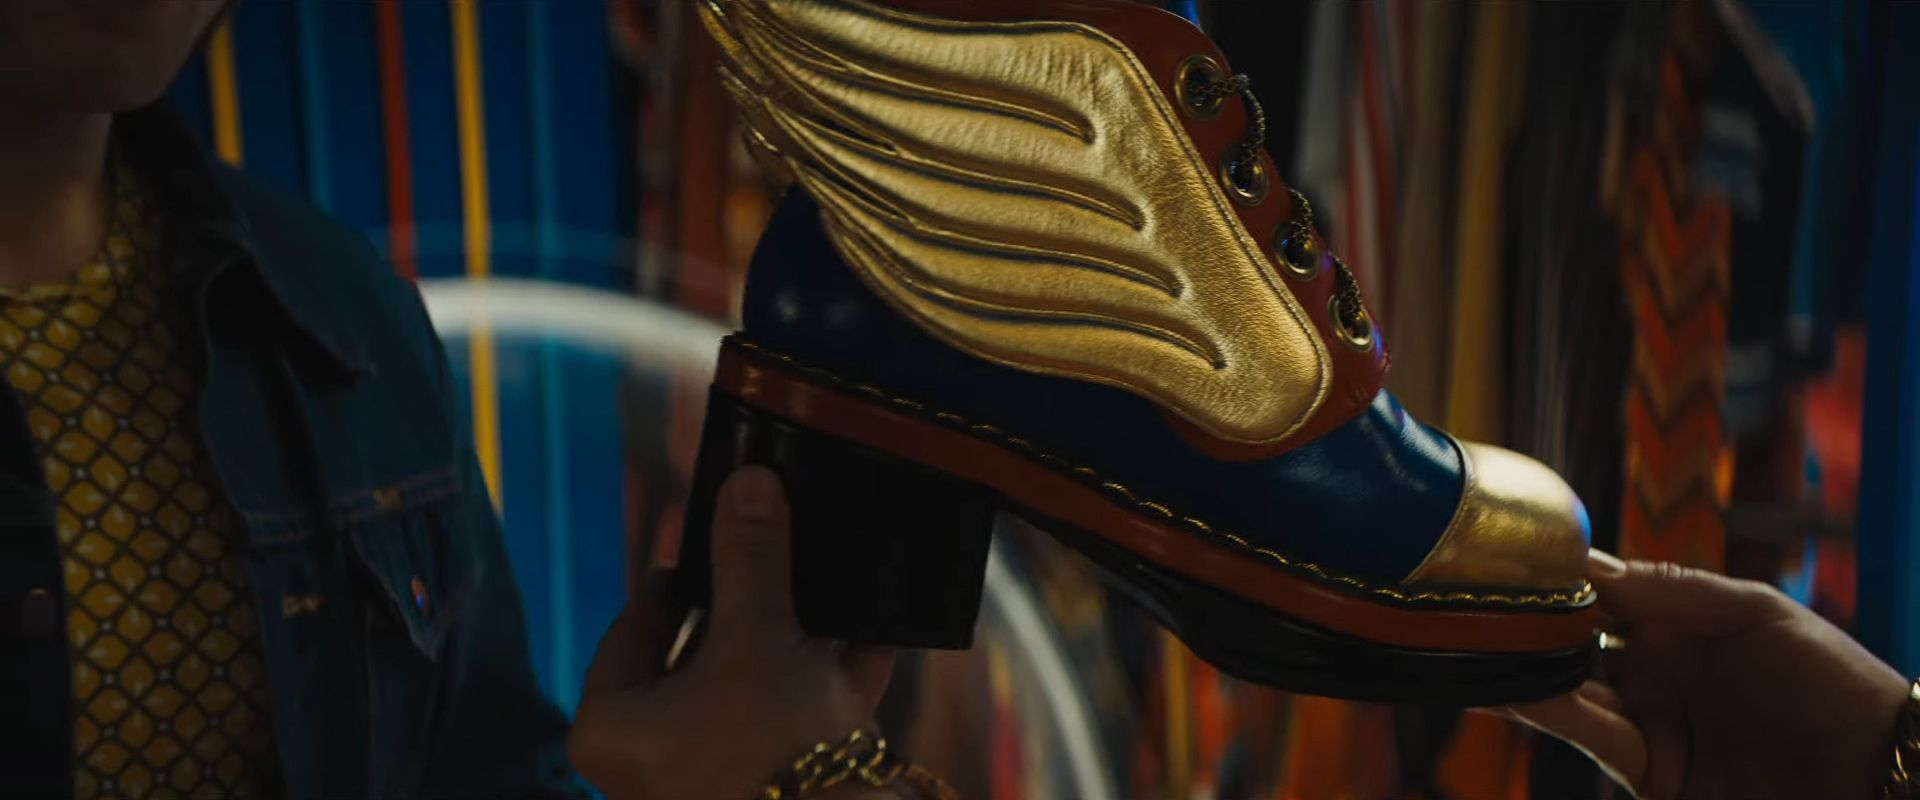 Rocketman (2019) colourful shoes with wigs